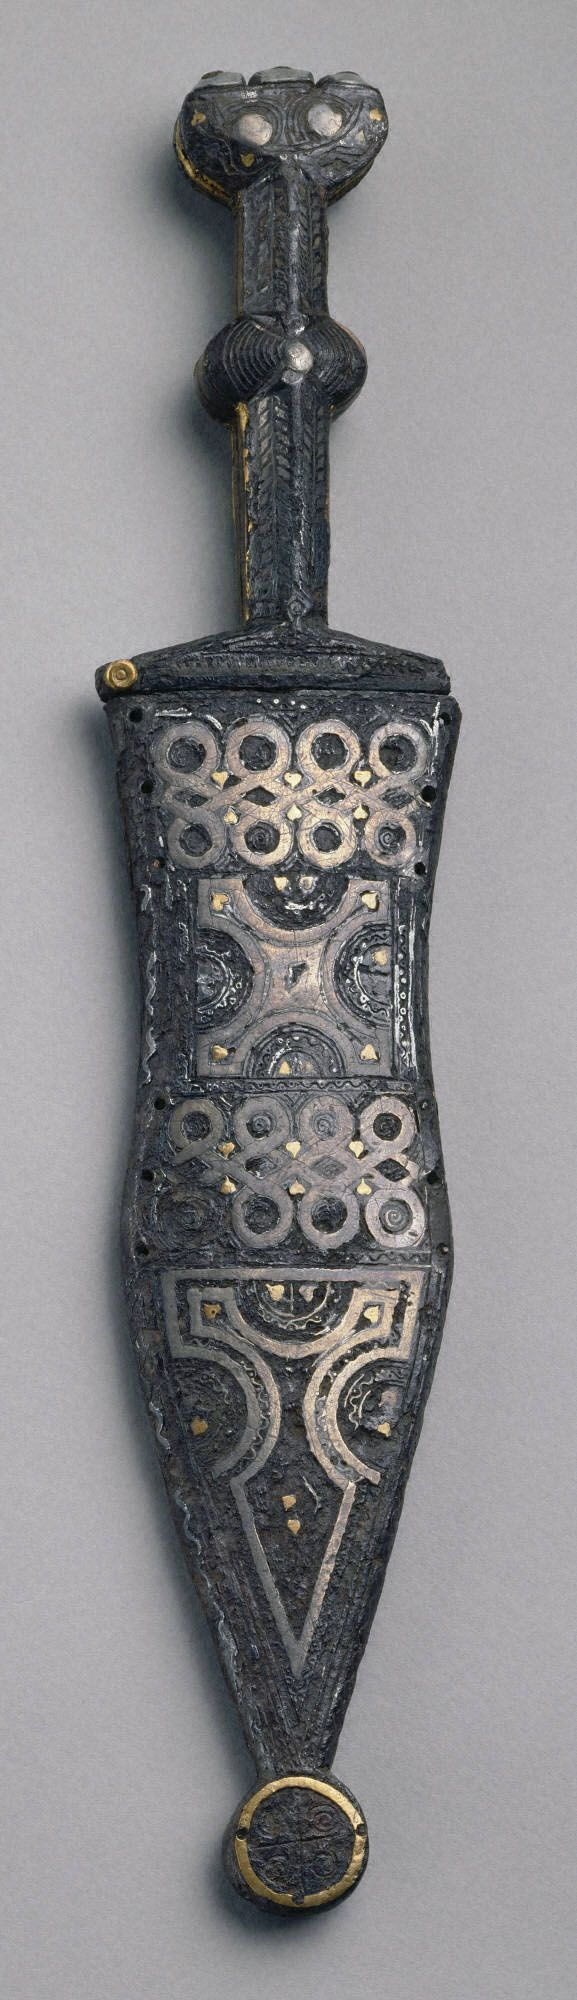 Roman Inlaid dagger (pugio) and scabbard, signed on the hilt by Honillius(?), ca. 1st – 2nd century A.D. Bronze, iron, silver, gold, niello